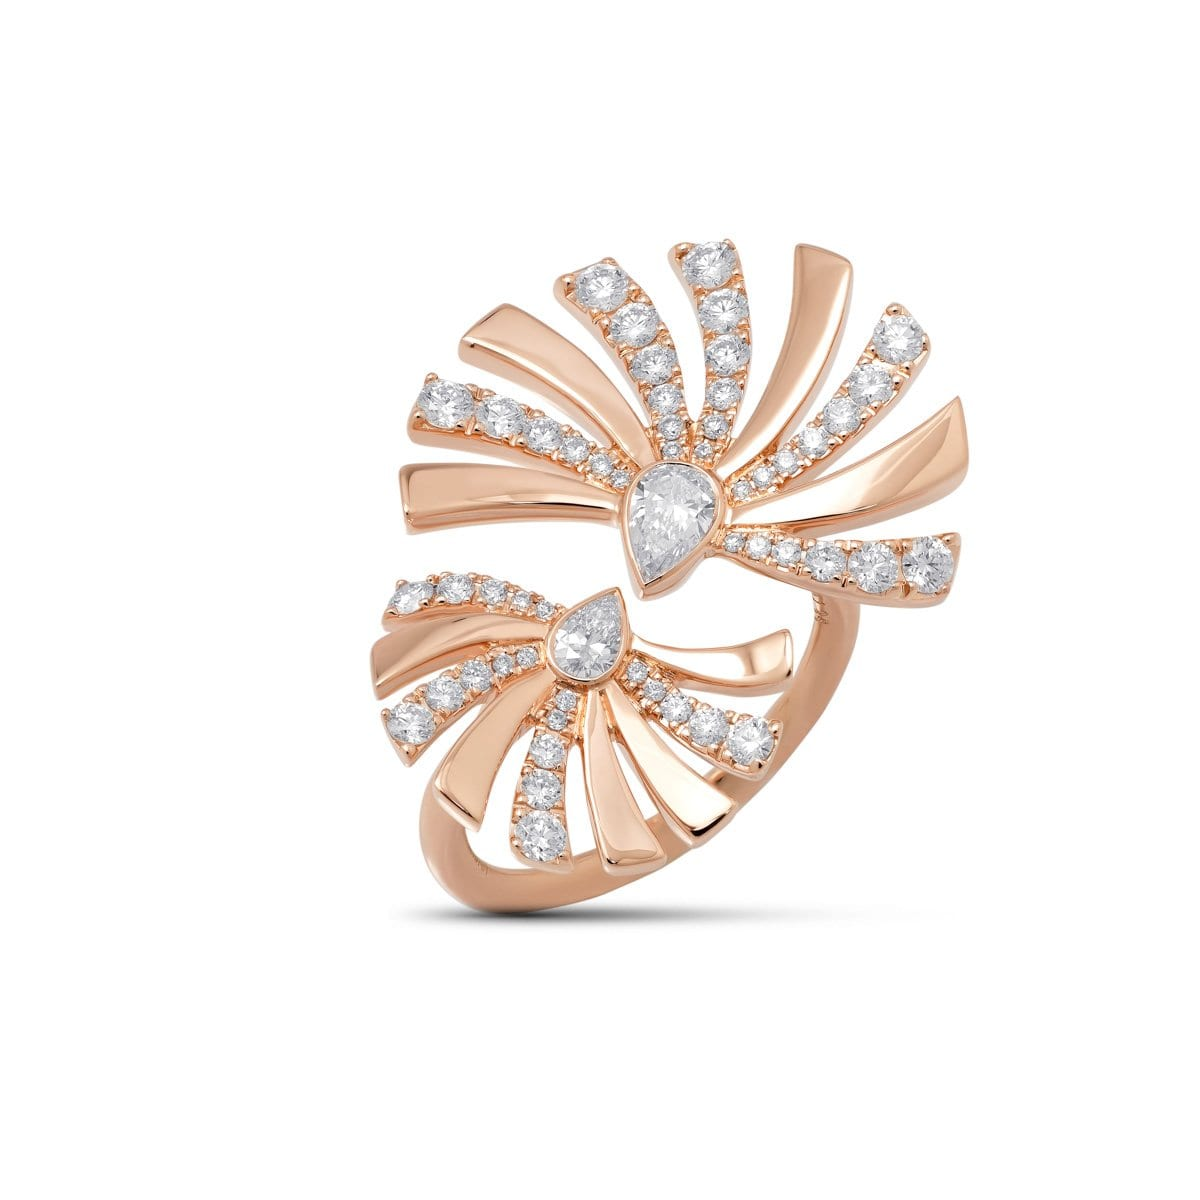 PERSUASION Ring - STENZHORN JEWELLERY